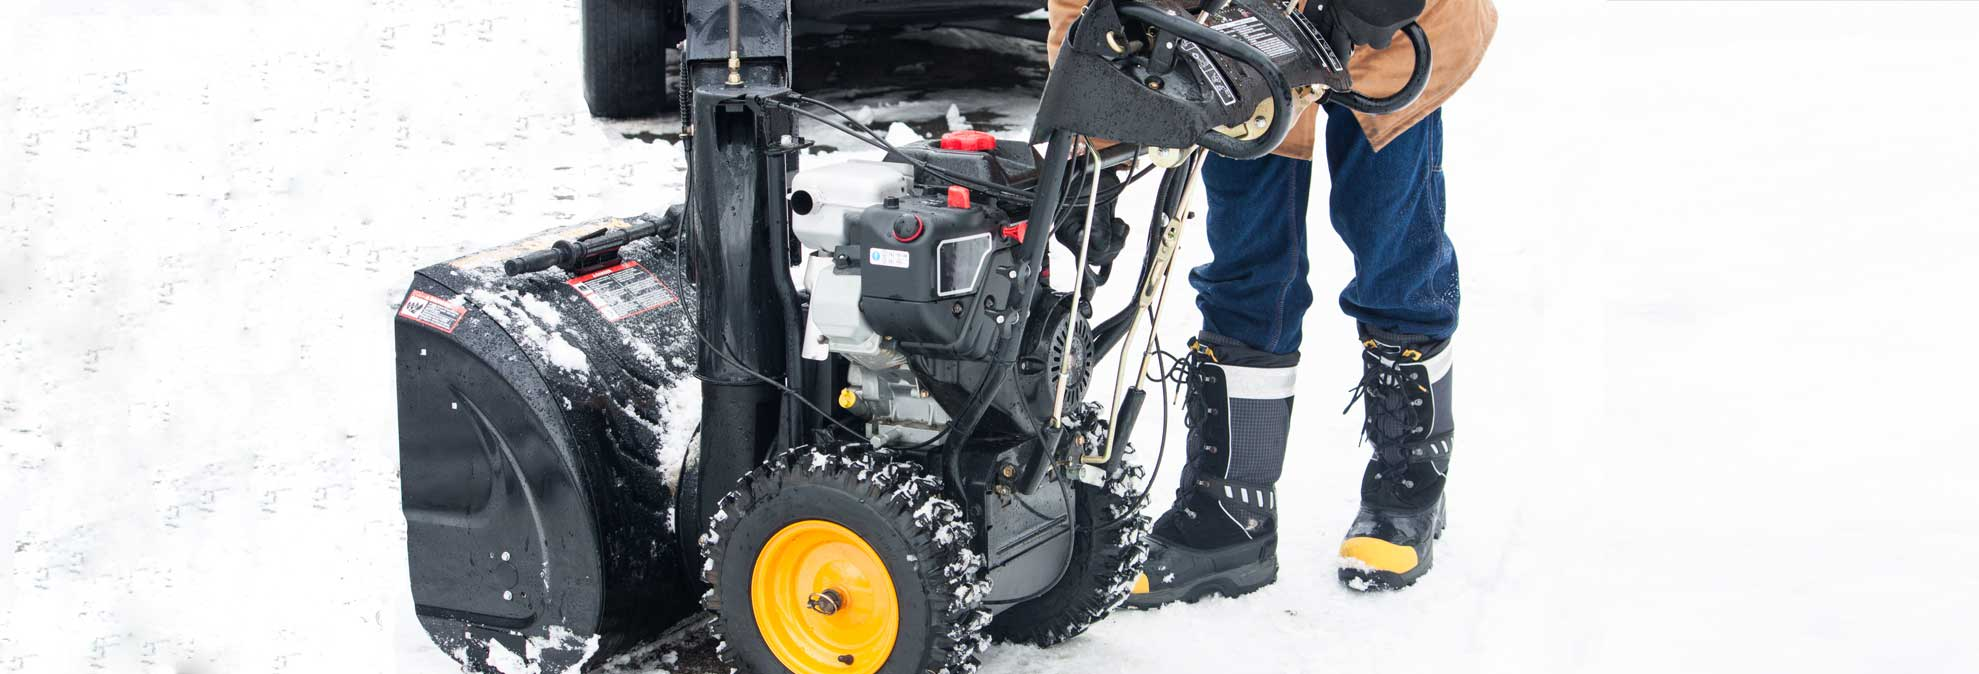 Snow Blower Storage Tip: Should You Drain the Gas?